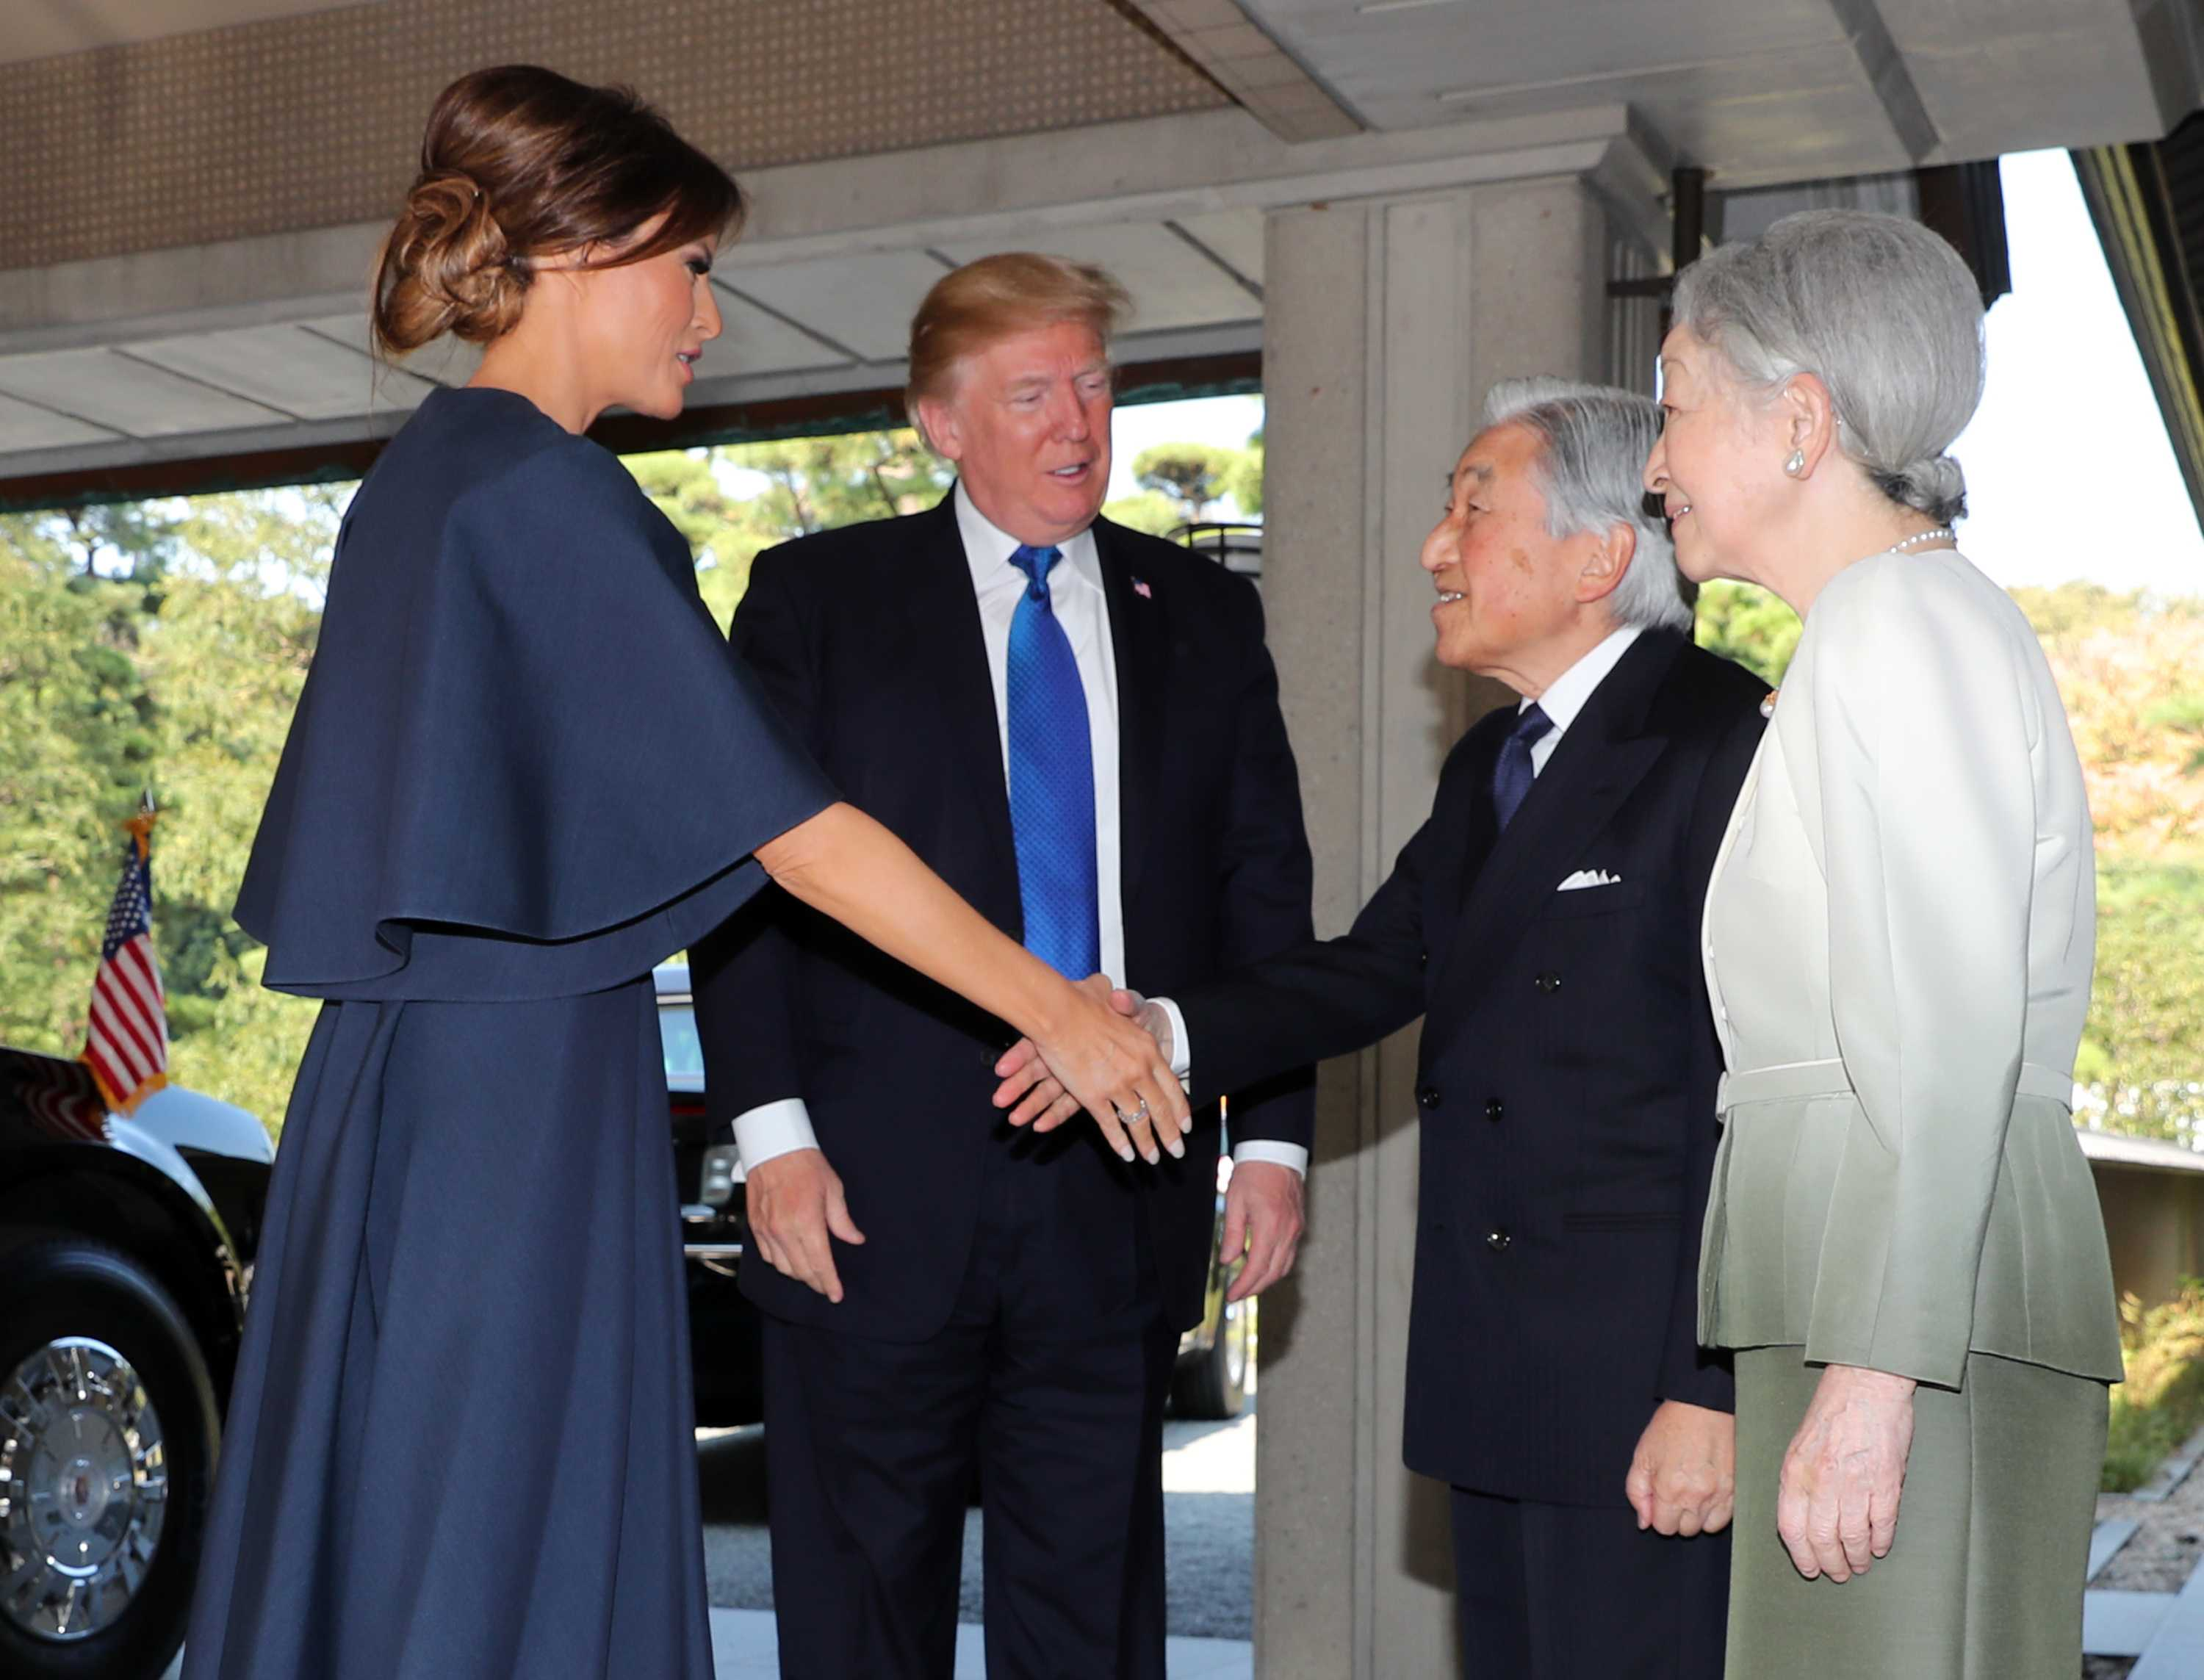 Japanese Emperor Akihito to Abdicate in April 2019